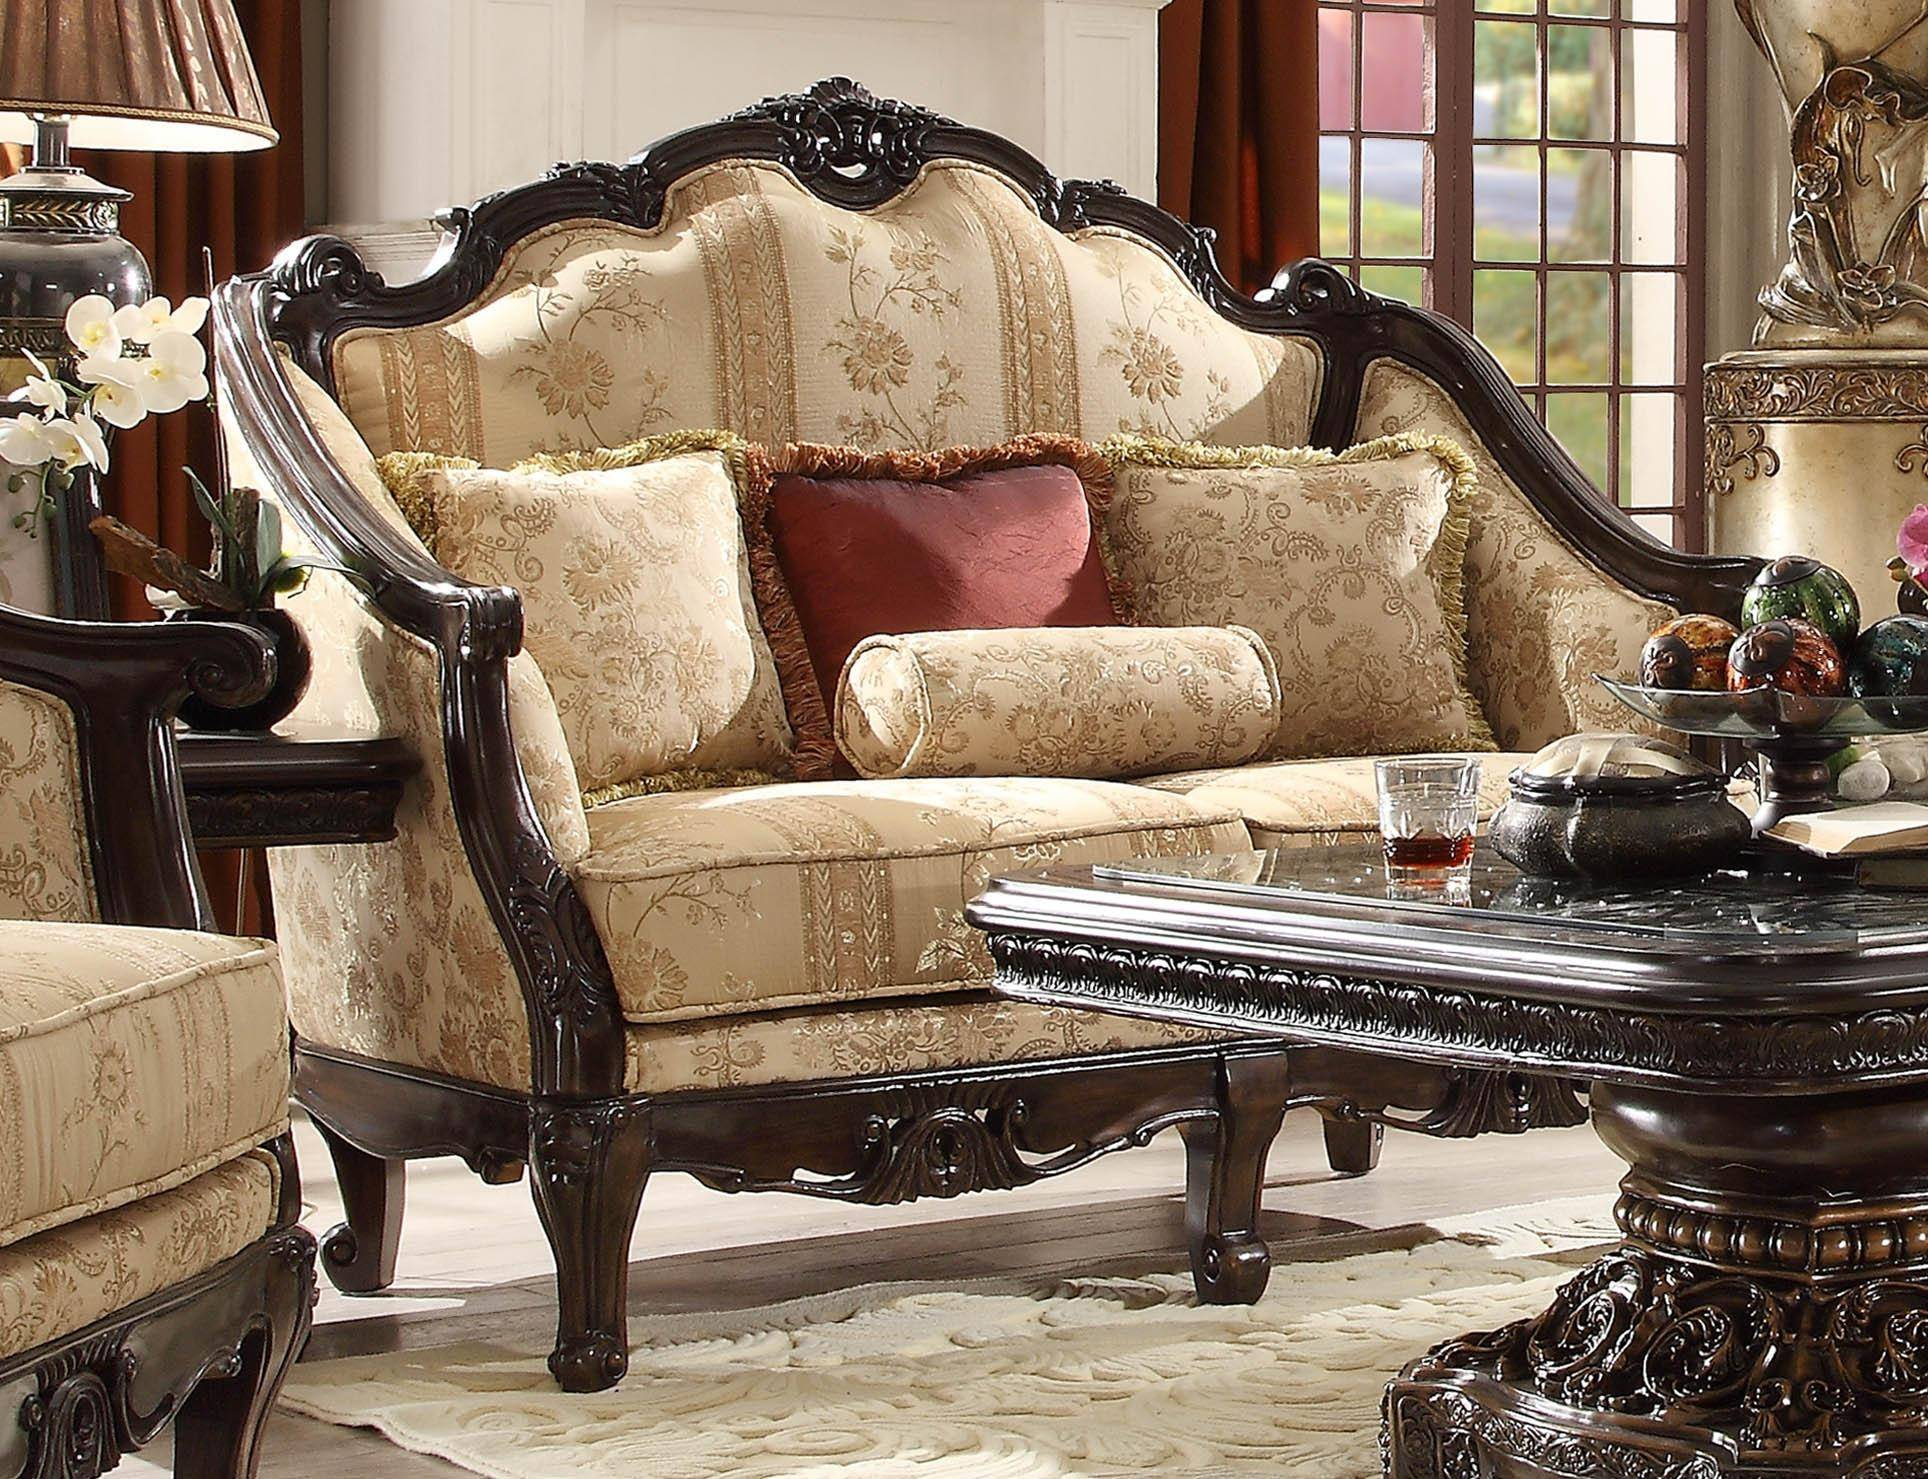 Cool Homey Design Hd 953 Luxury Upholstery Golden Beige Dark Brown Carved Wood Living Room Sofa Loveseat And Coffee Table Set 3Pcs Unemploymentrelief Wooden Chair Designs For Living Room Unemploymentrelieforg